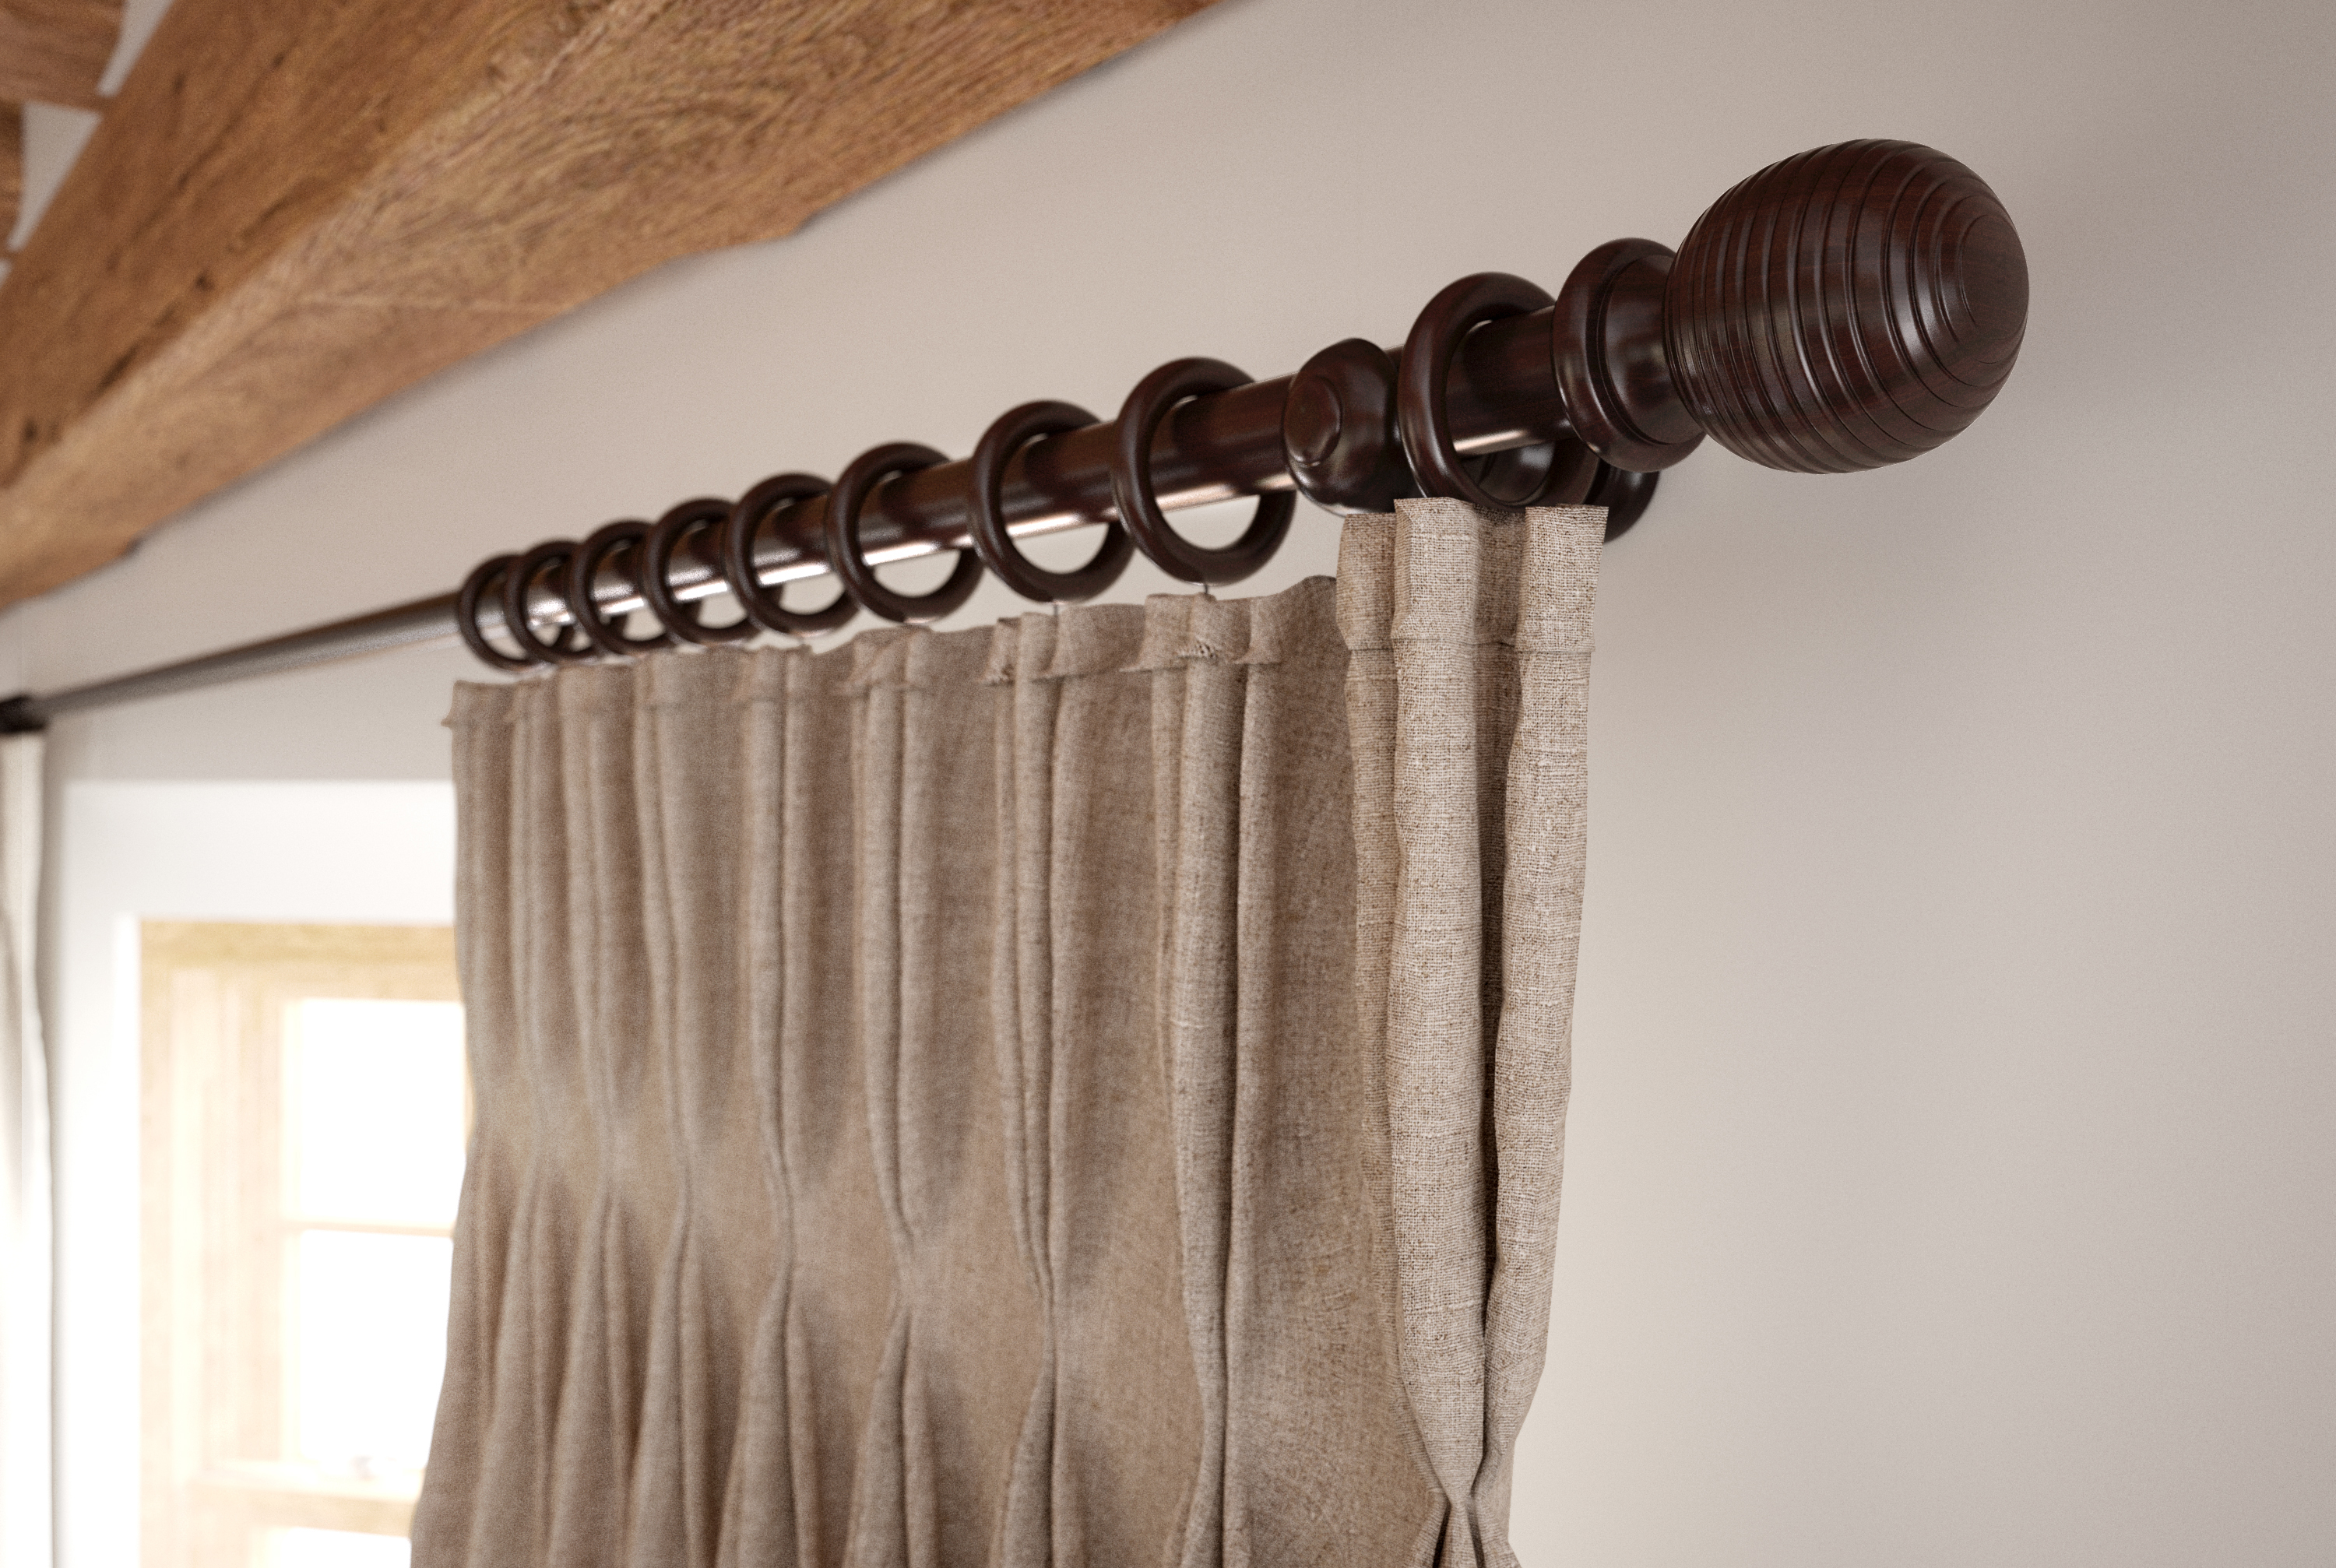 35mm Walnut Tatton Pole Close Up<div style='clear:both;width:100%;height:0px;'></div><span class='cat'>Speedy Products</span>